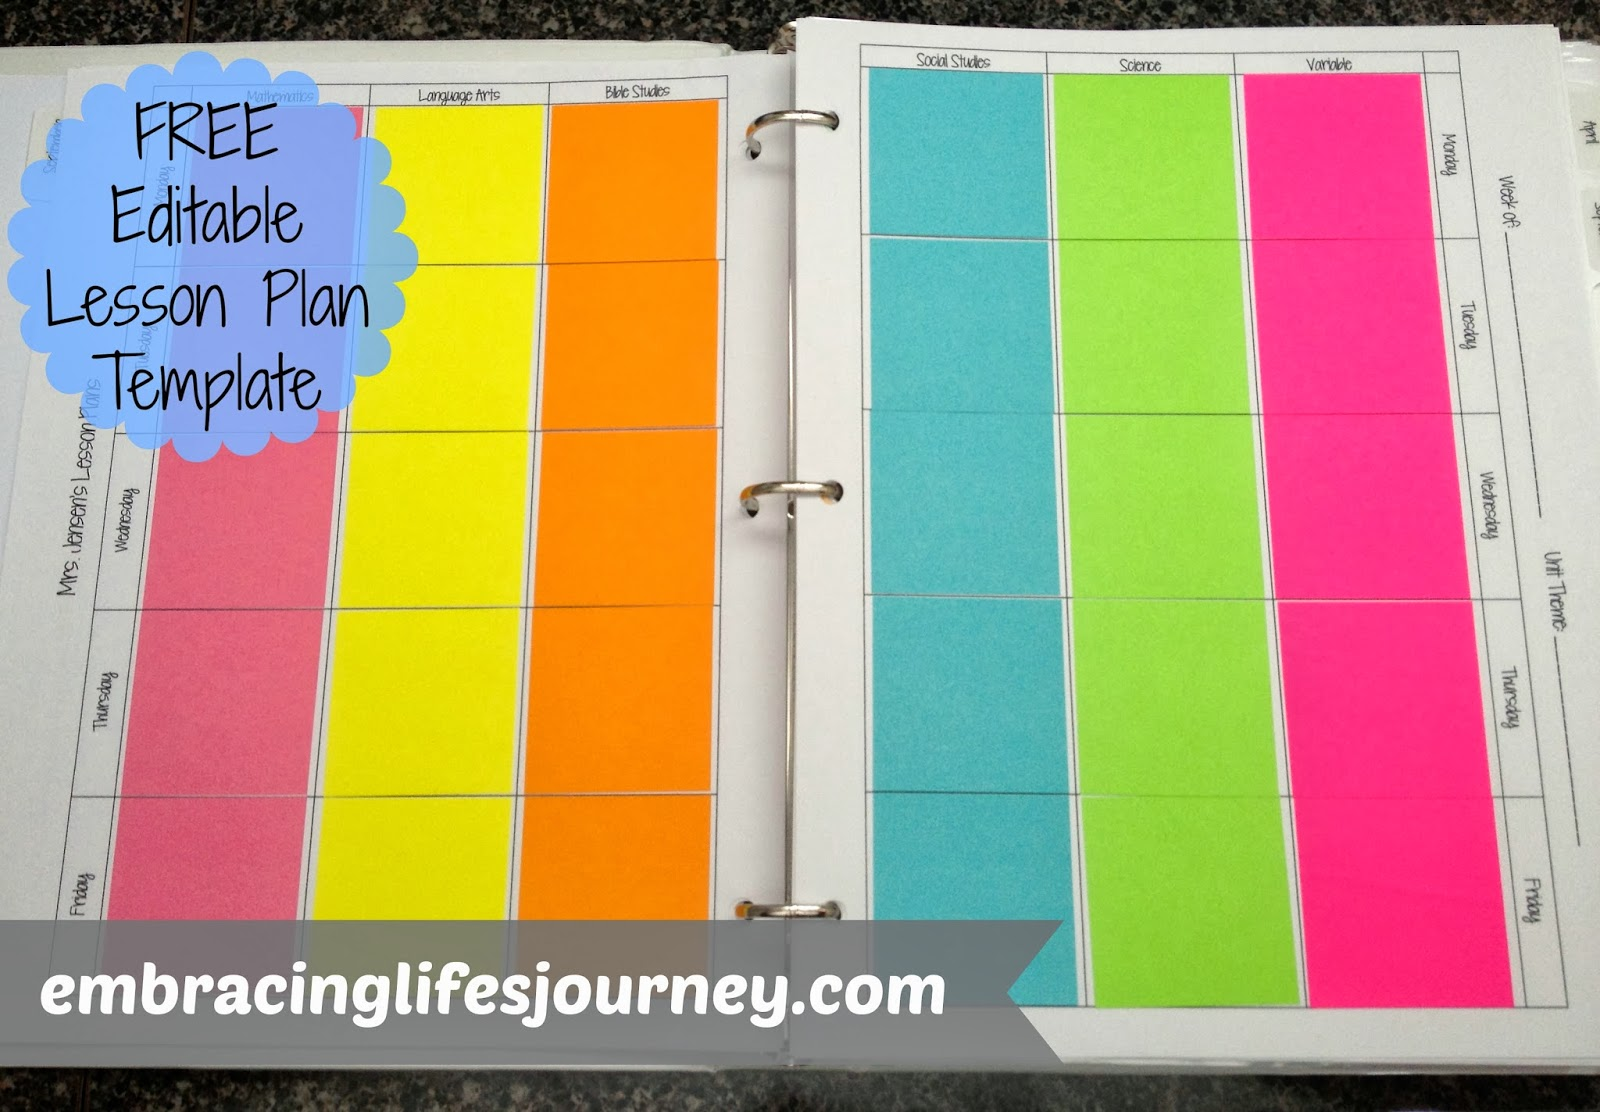 ... Life's Journey: FREE editable sticky note lesson plan template